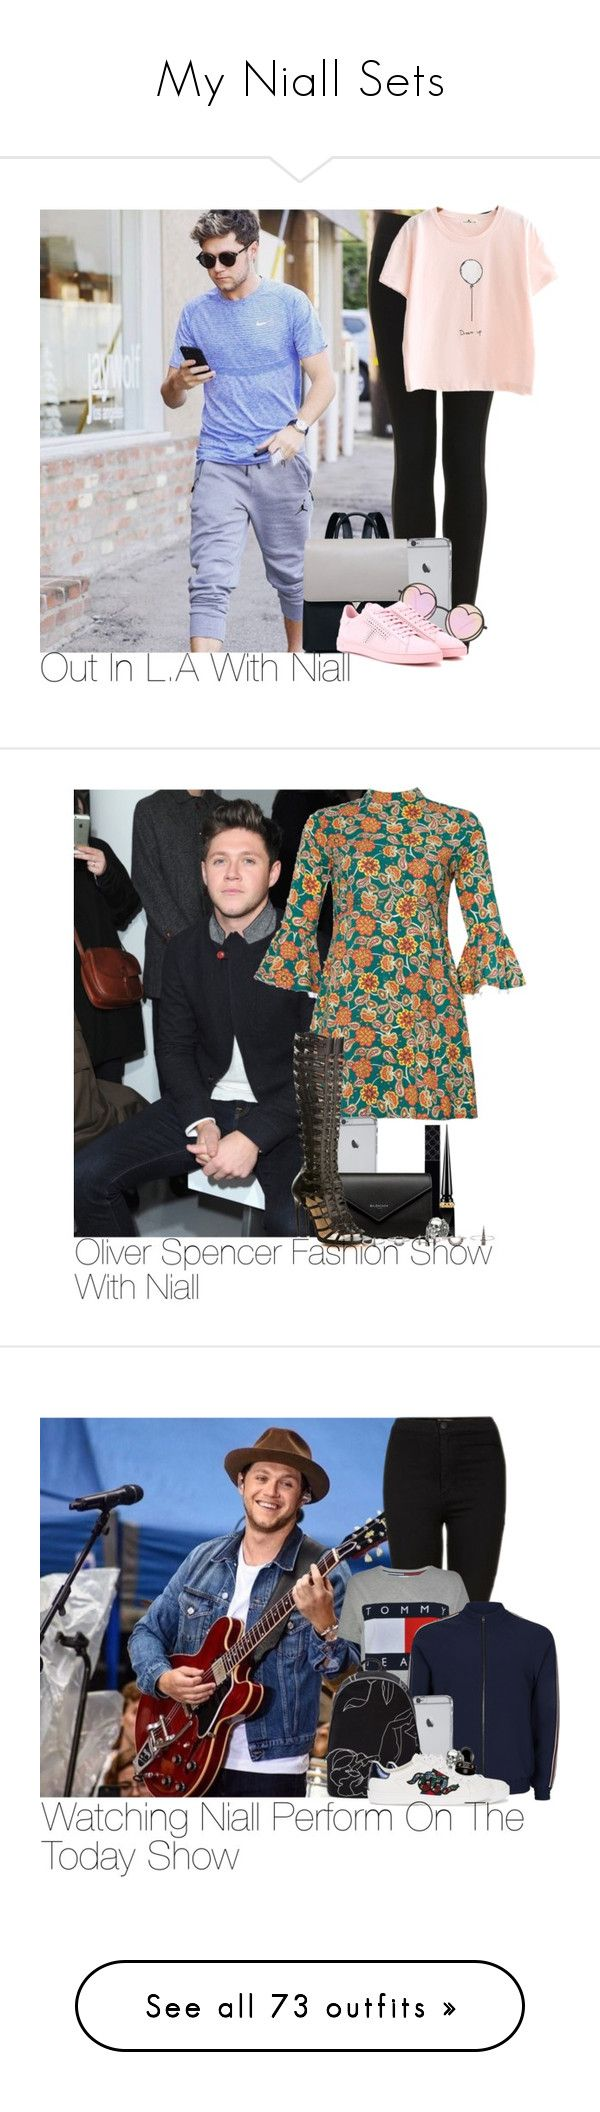 """My Niall Sets"" by lauren-beth-owens ❤ liked on Polyvore featuring Topshop, Betsey Johnson, Tod's, NiallHoran, Gucci, Balenciaga, Paul Andrew, Christian Louboutin, Ugo Cacciatori and Luv Aj"